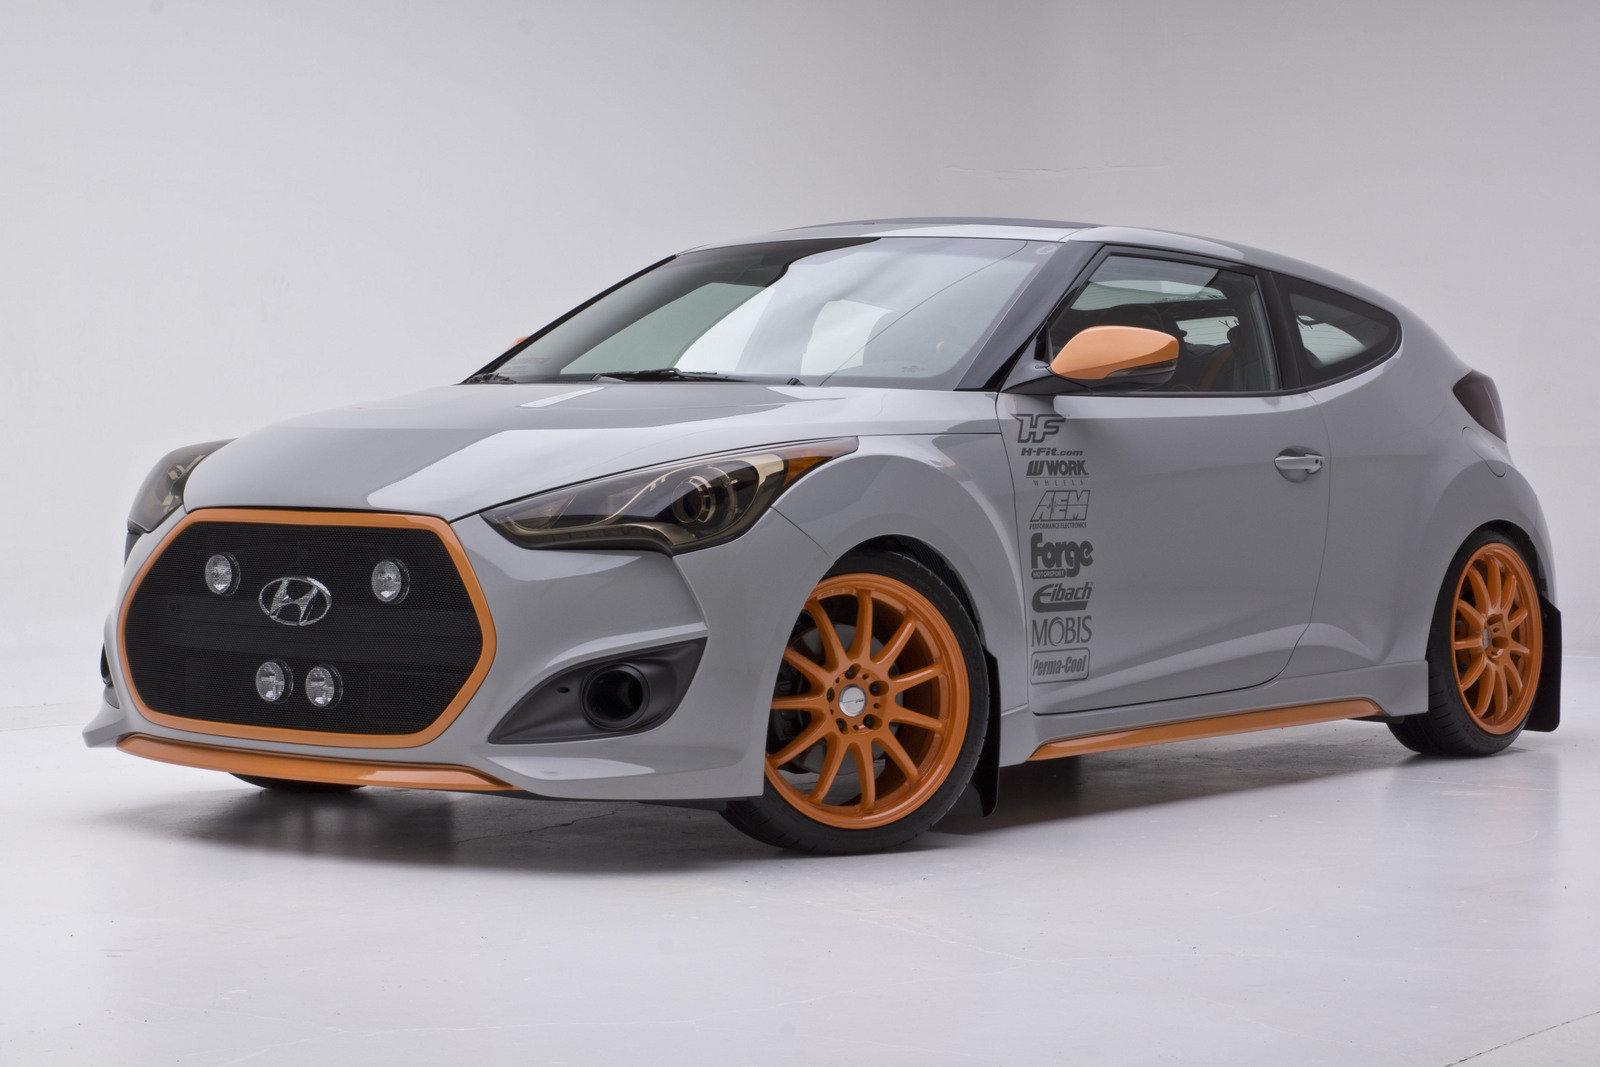 2013 Hyundai Service Engineering Trackday Veloster Top Speed